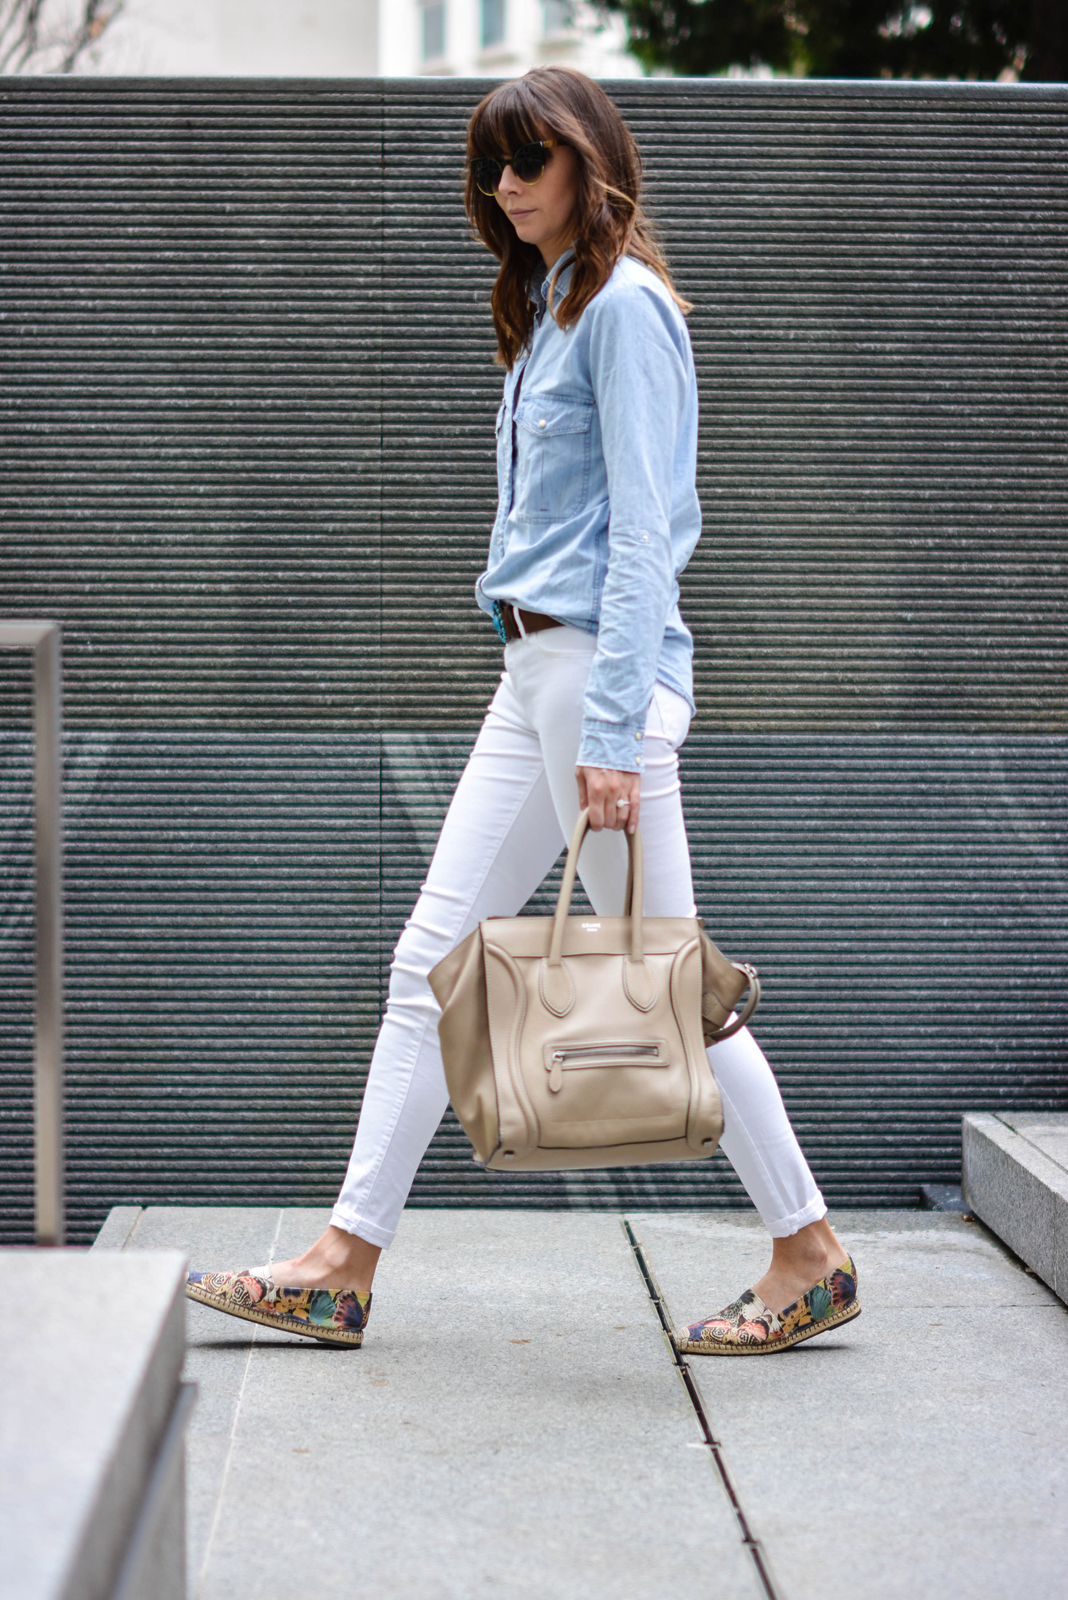 EJSTYLE - Emma Hill, River Island white skinny jeans, Topshop denim shirt, Turquoise brown leather belt, Celine mini luggage nude, Valentino Butterfly espadrilles, OOTD